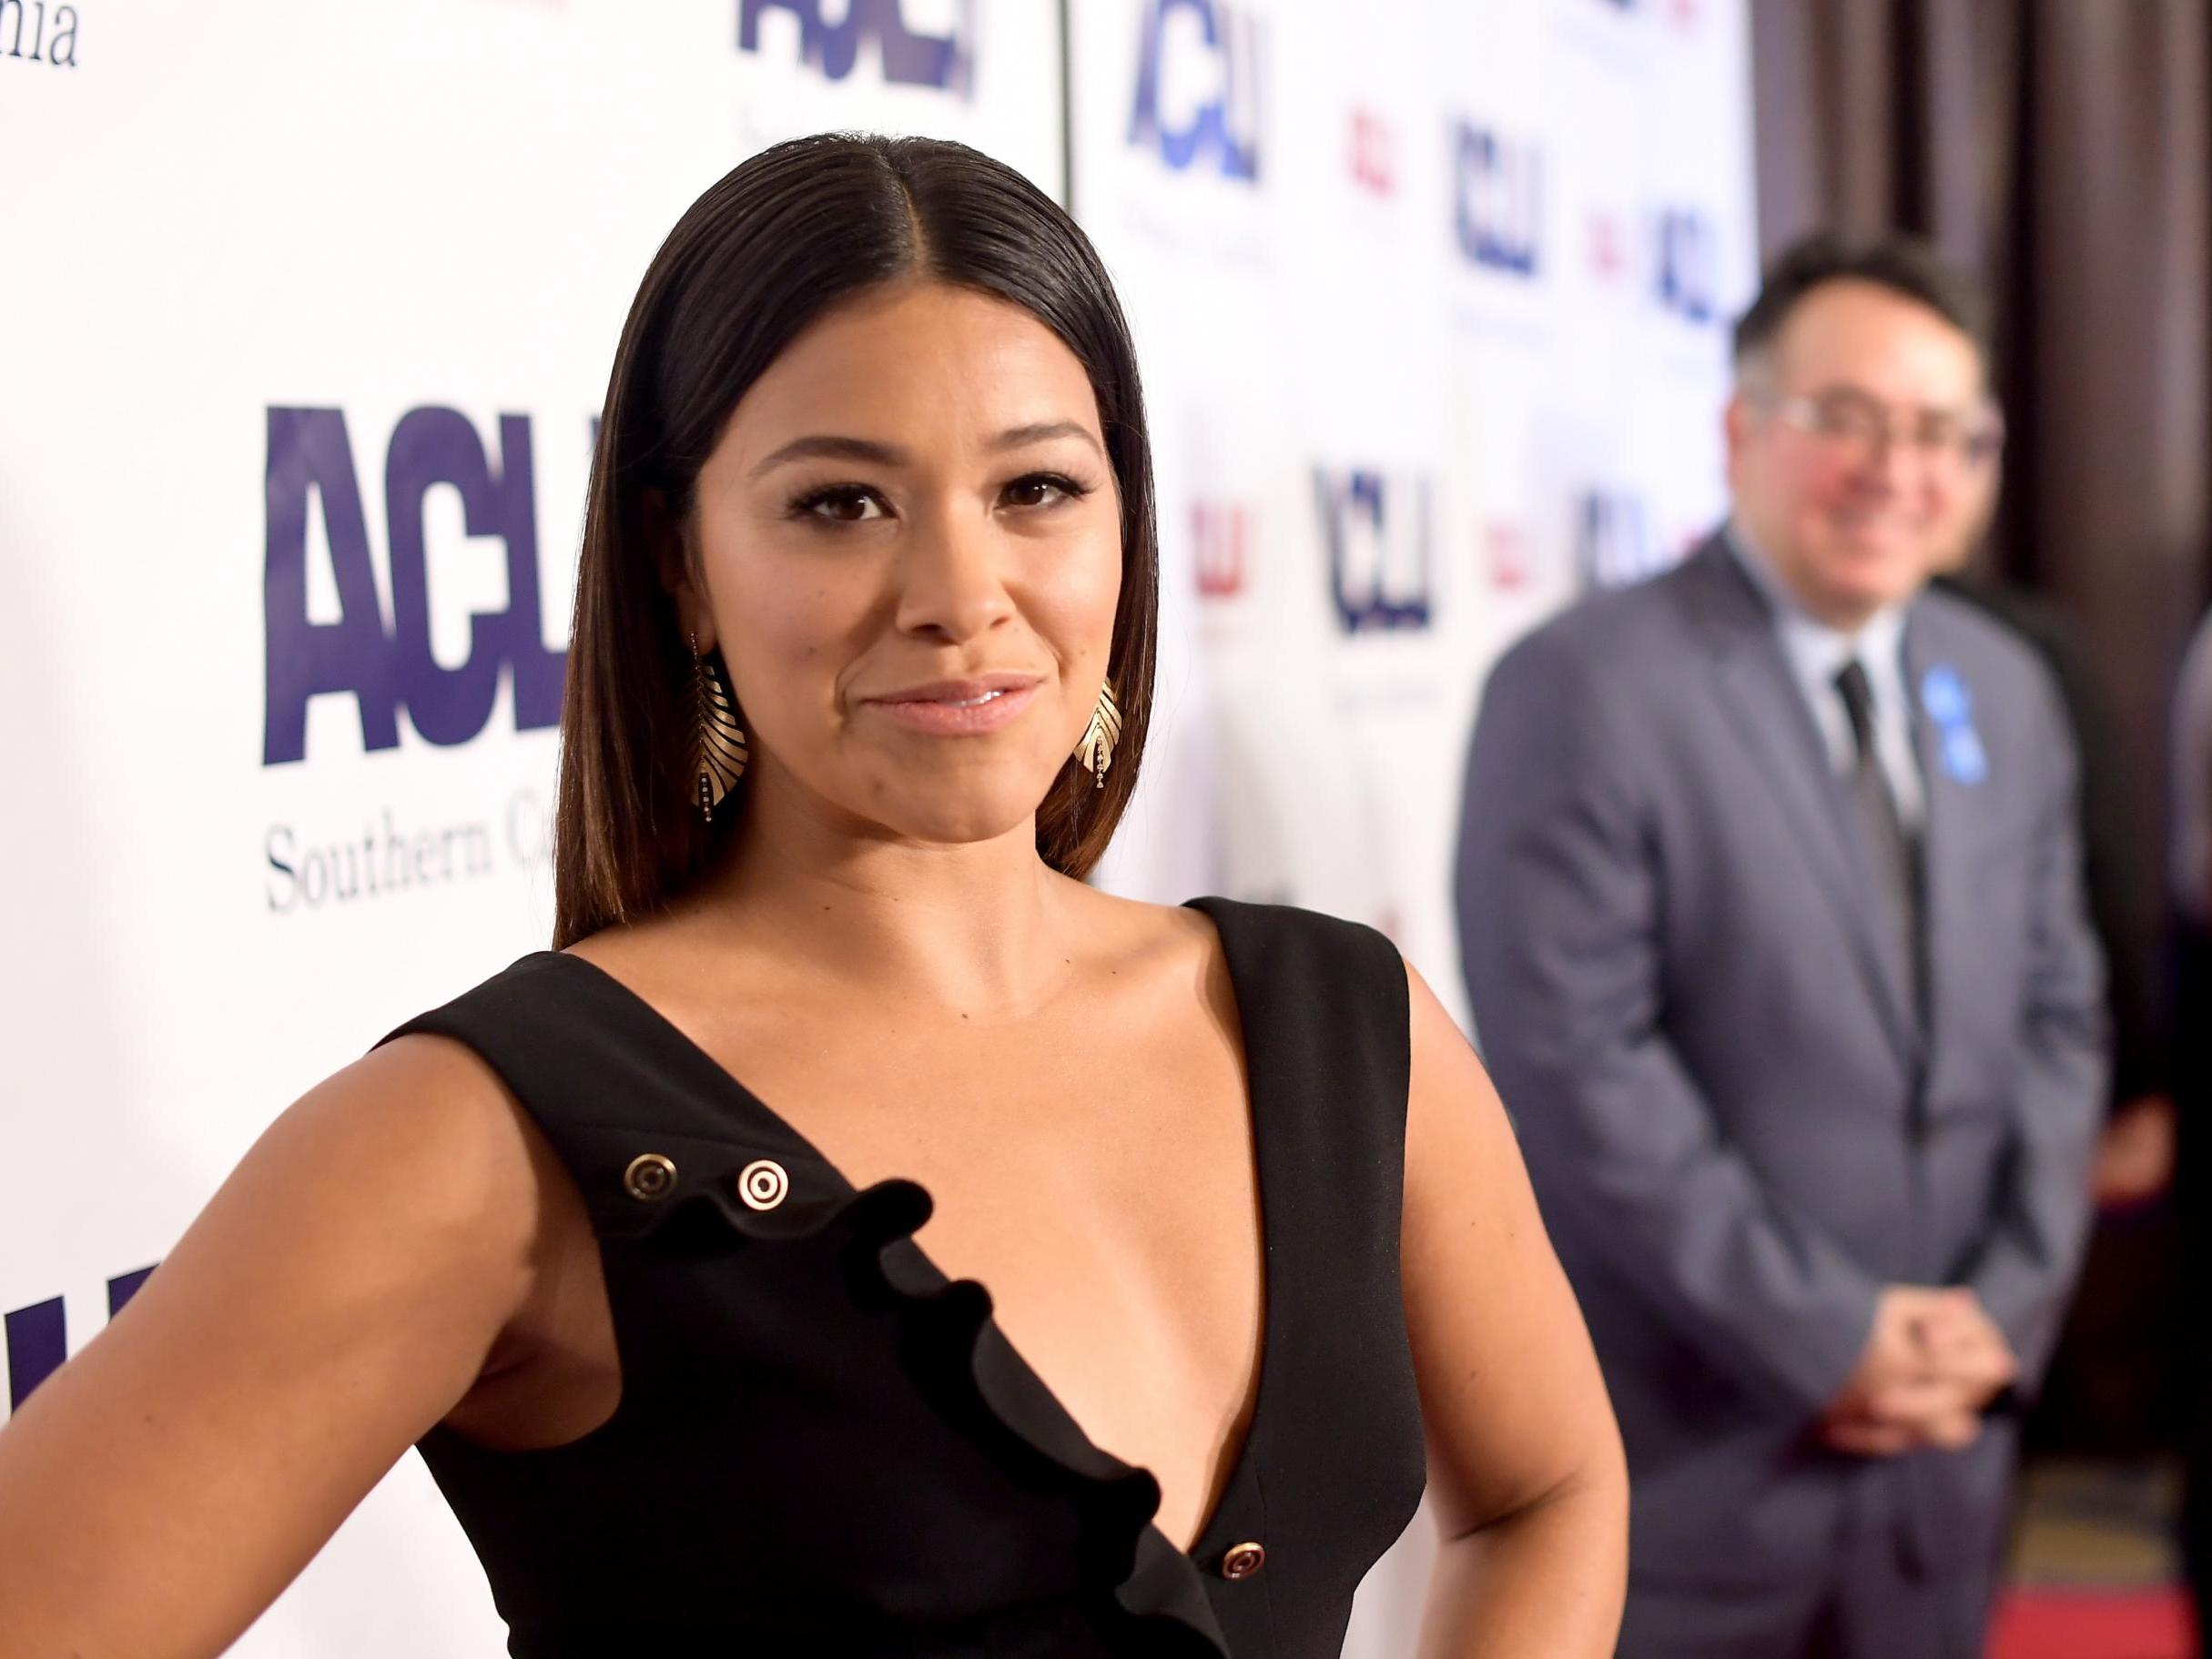 Gina rodriguez (pornographic actress)